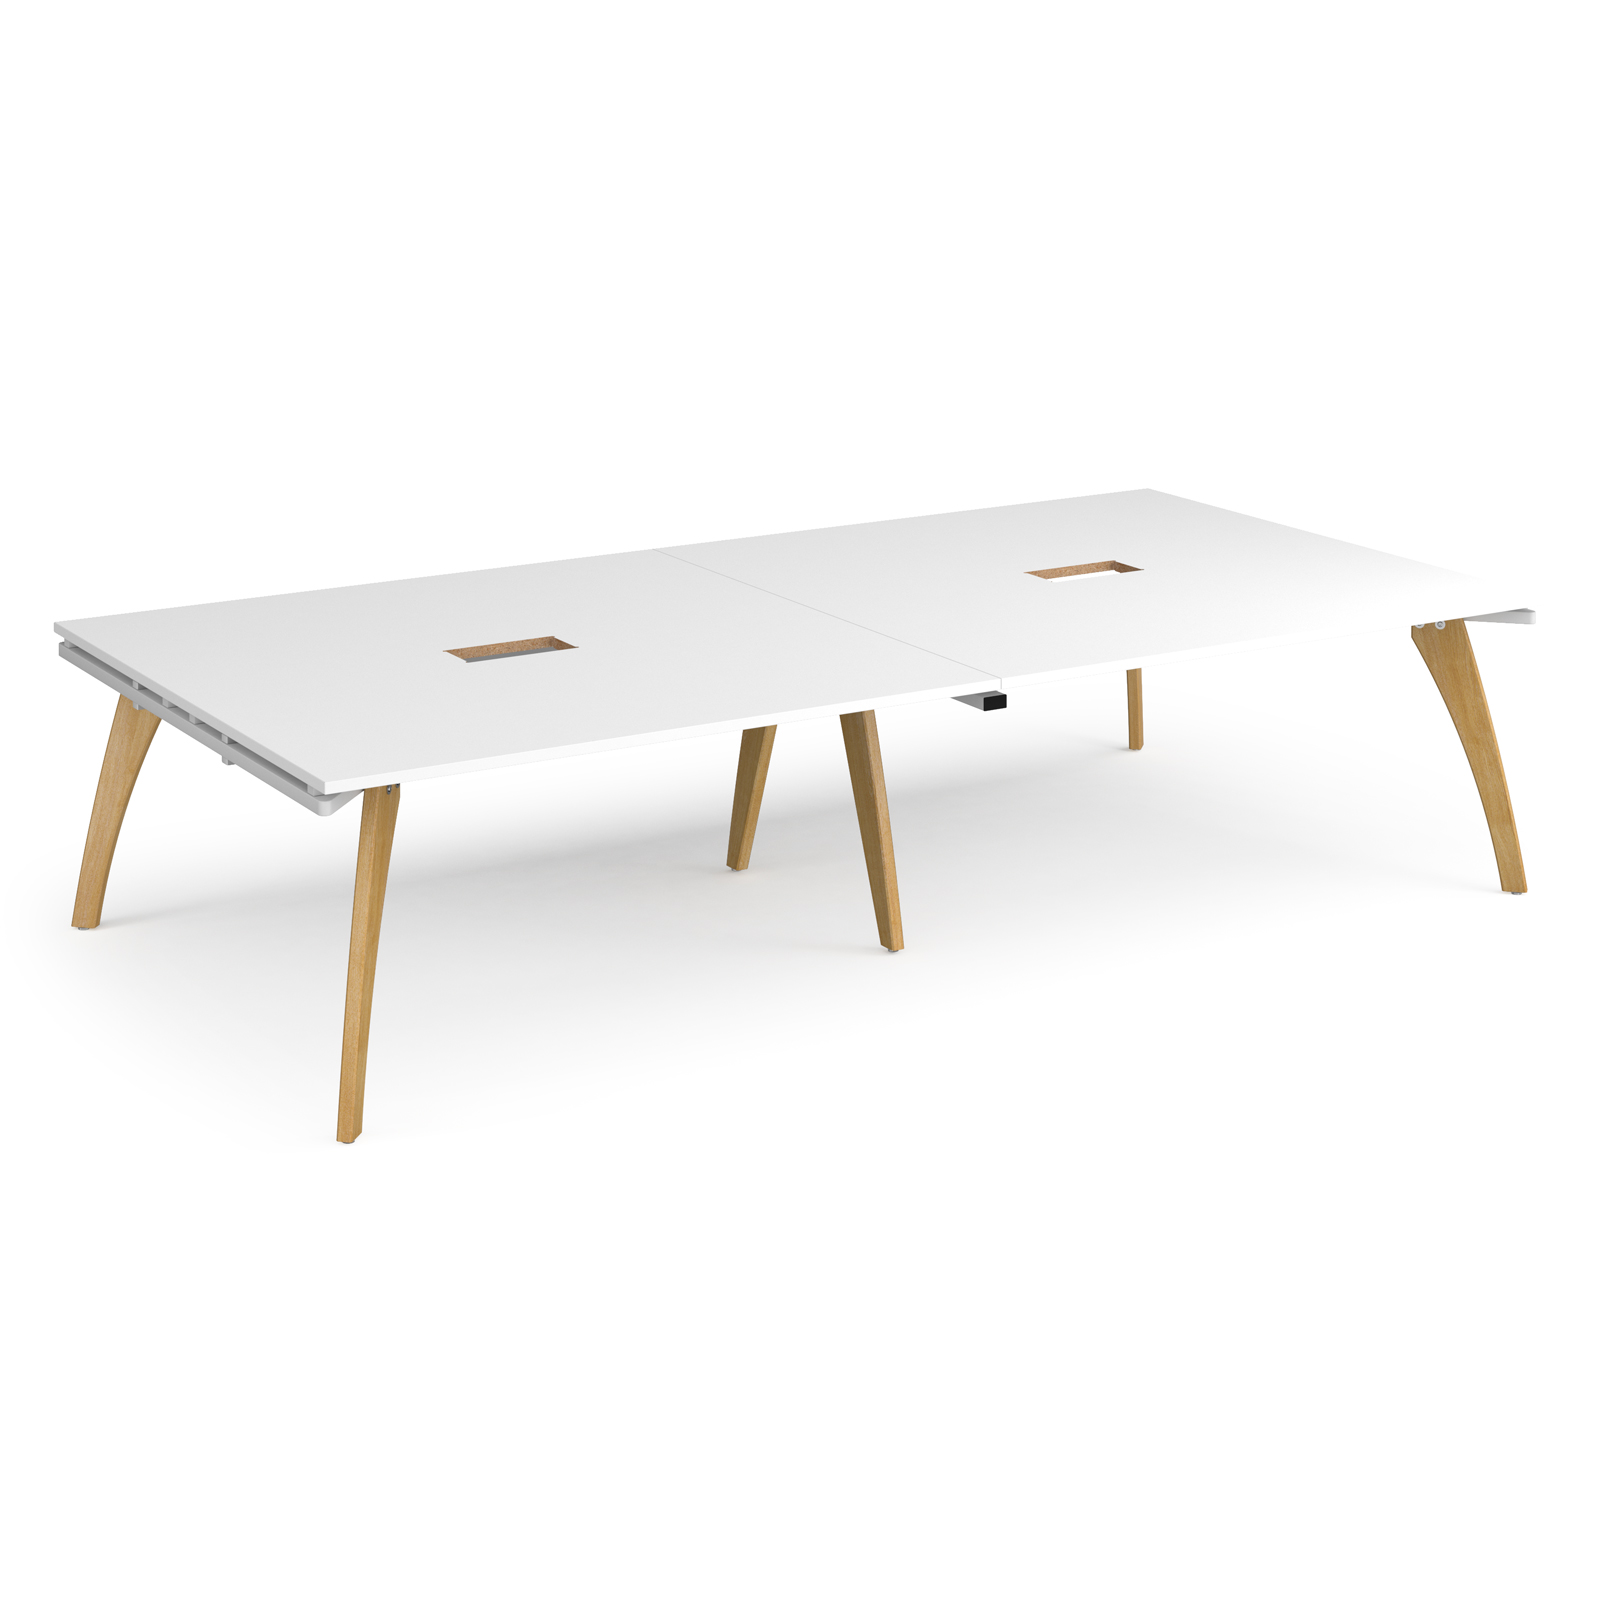 Fuze rectangular boardroom table 3200mm x 1600mm with 2 cutouts 272mm x 132mm - white frame, white top